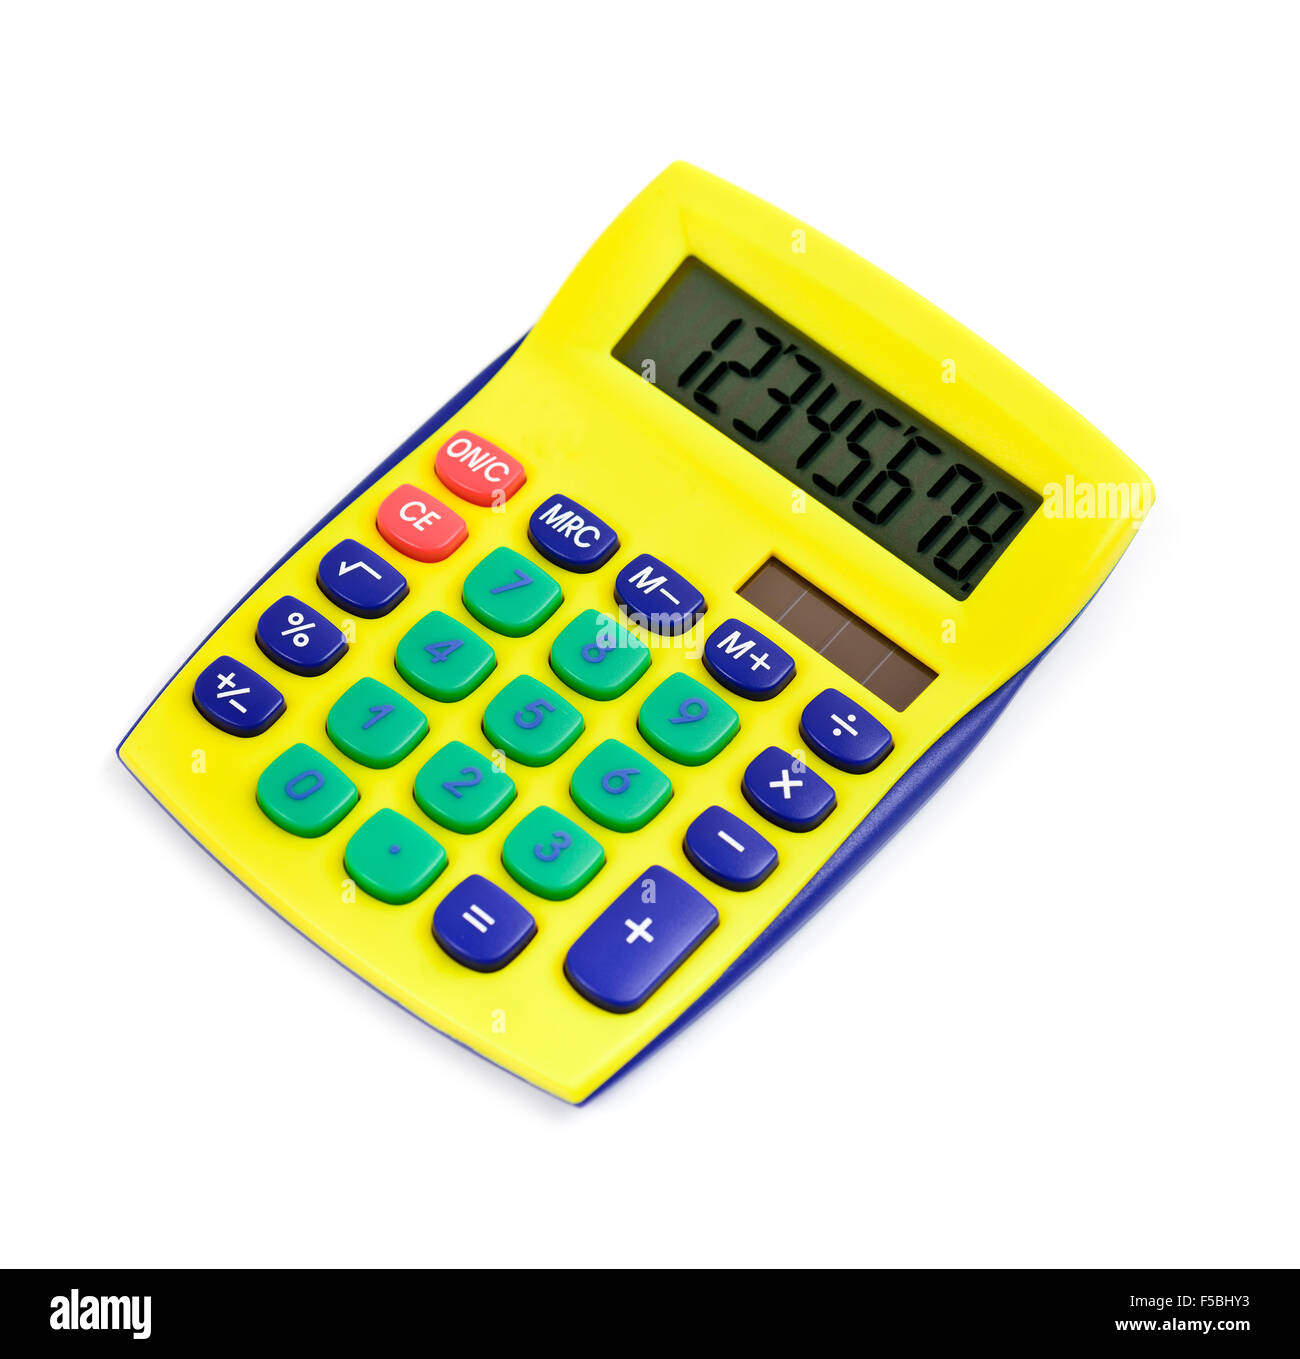 Modern calculator yellow colored isolated on white Stock Photo